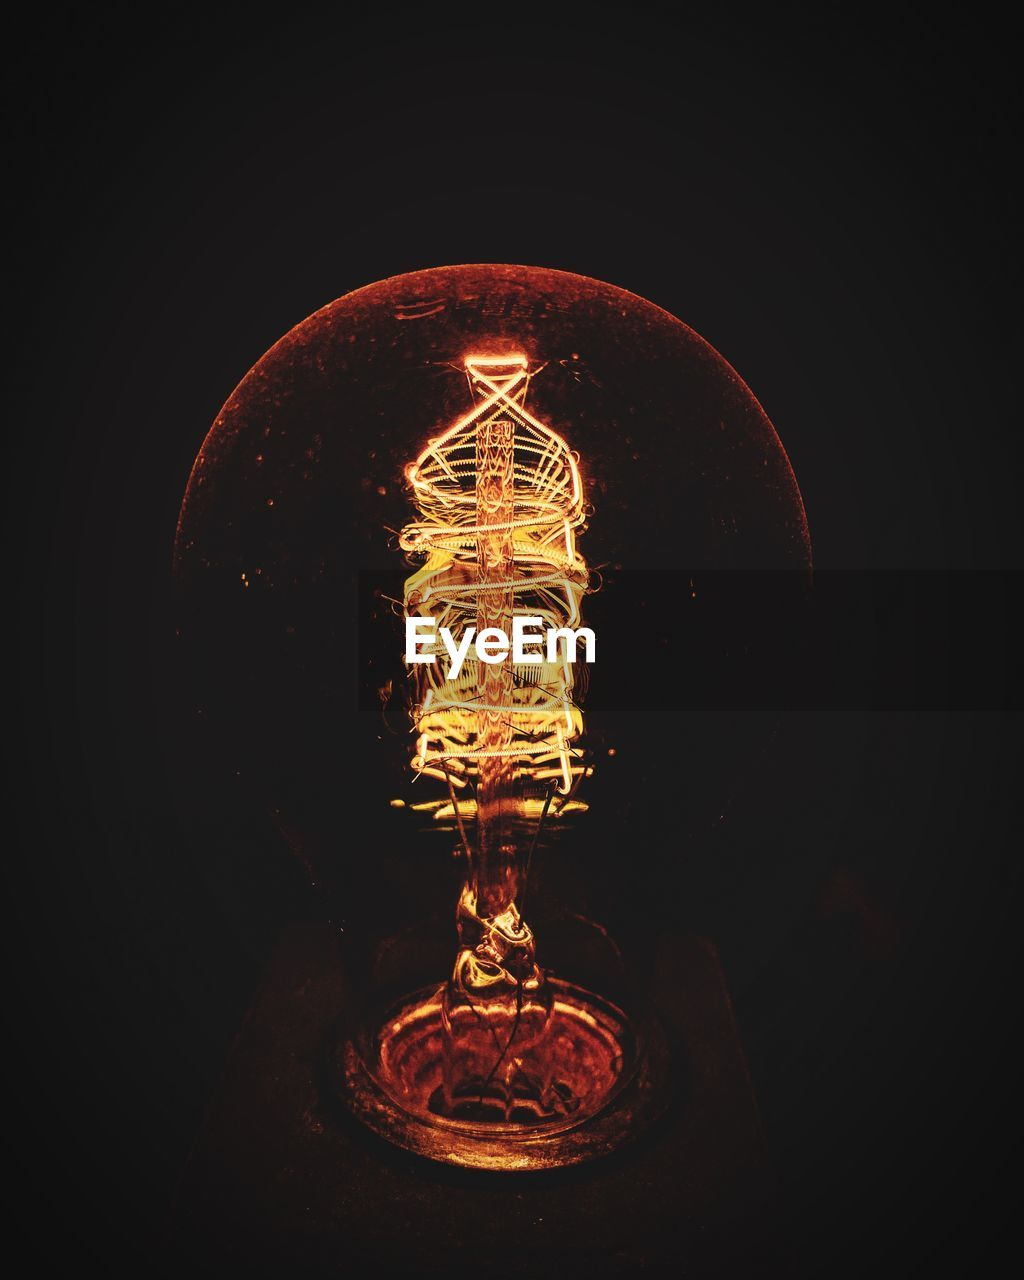 illuminated, light bulb, electricity, lighting equipment, filament, indoors, black background, light, no people, studio shot, glass - material, glowing, close-up, transparent, dark, electric light, light - natural phenomenon, single object, orange color, technology, power supply, electrical equipment